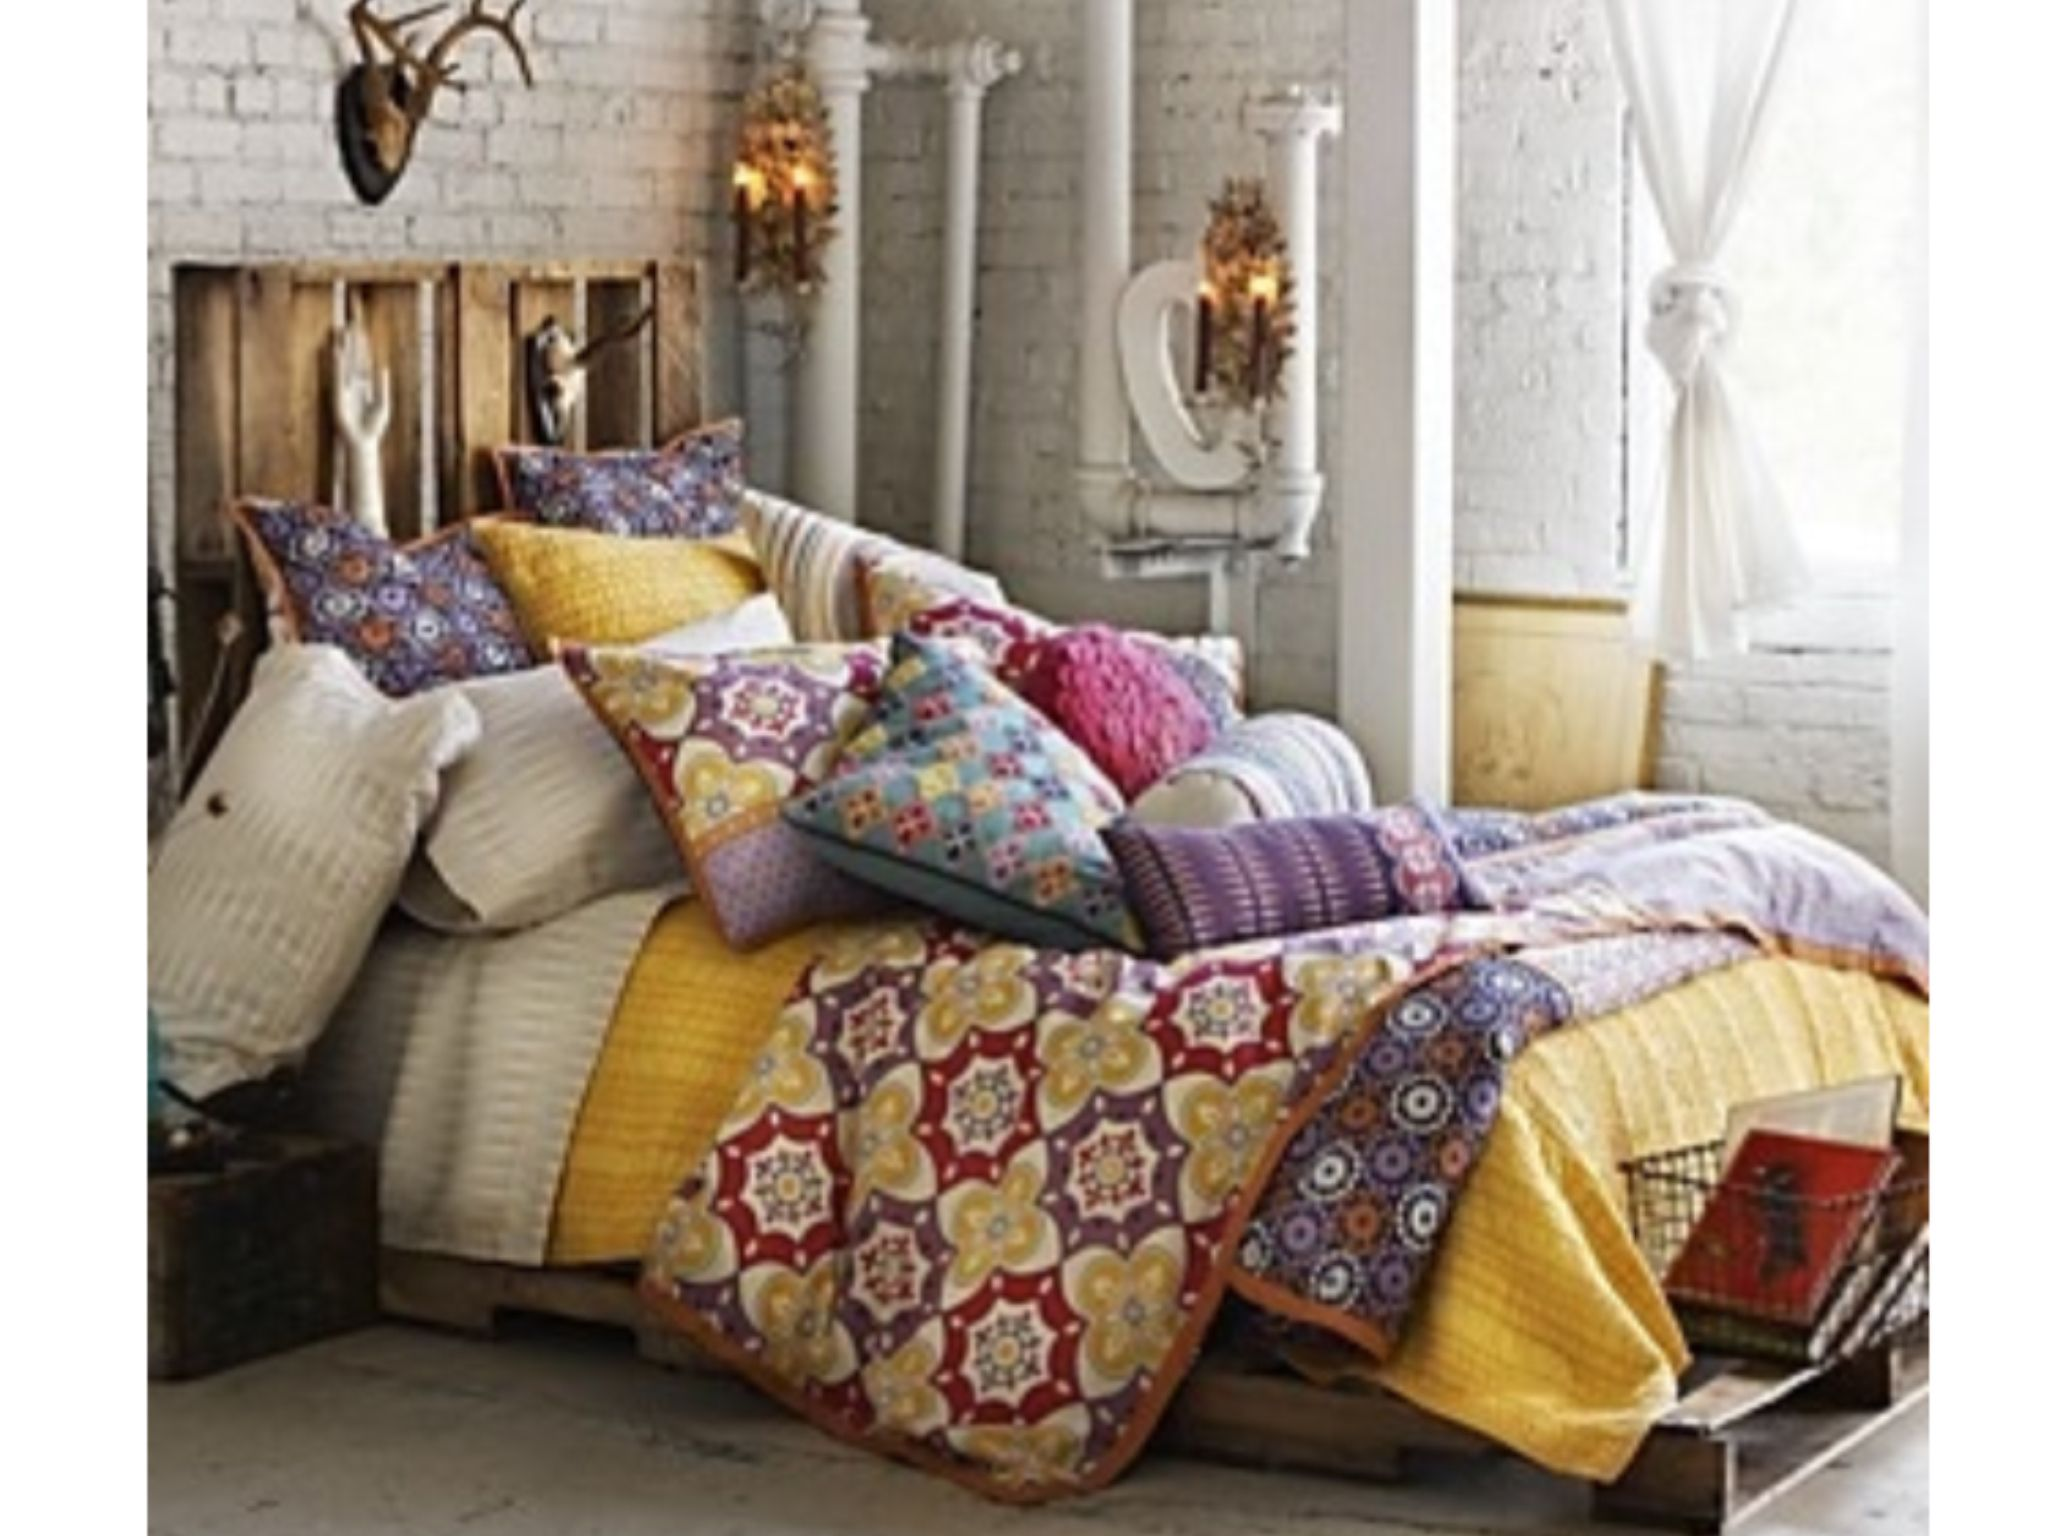 10 ways to add bohemian chic to your home andreasnotebookcom ...